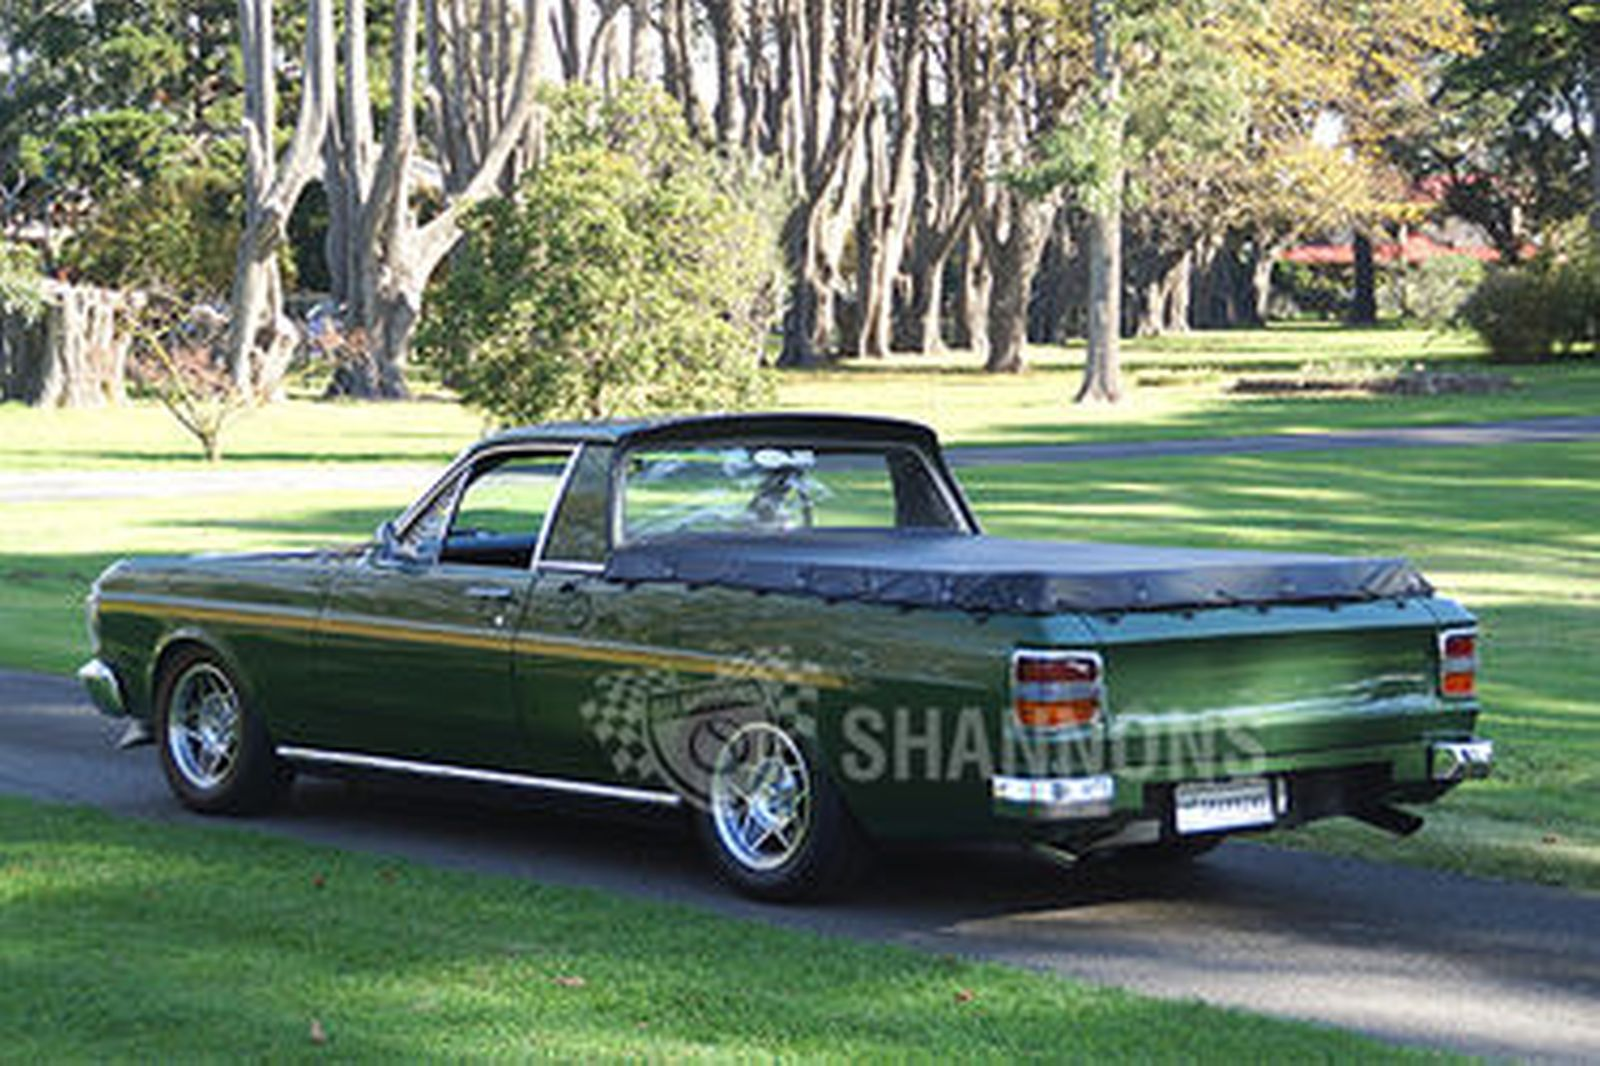 sold ford xy falcon 351 v8 utility auctions lot 35 shannons. Black Bedroom Furniture Sets. Home Design Ideas